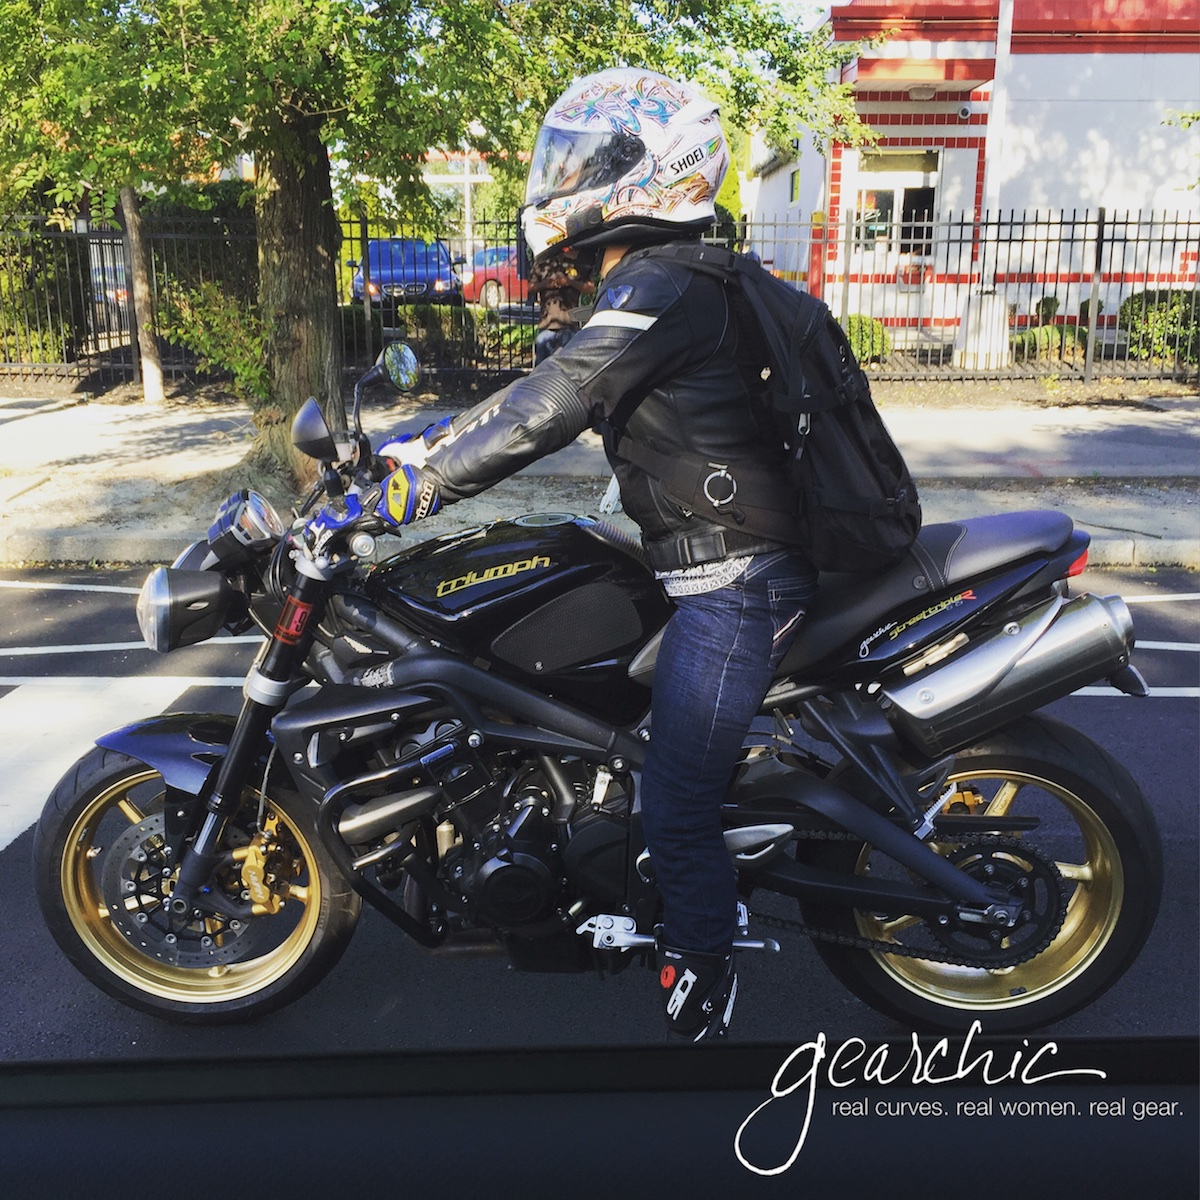 Typical city riding gear; ARMORED jeans, riding boots, full gloves, leather (with mesh panels in the summer) jacket and full face helmet. Yes, always. And then some.